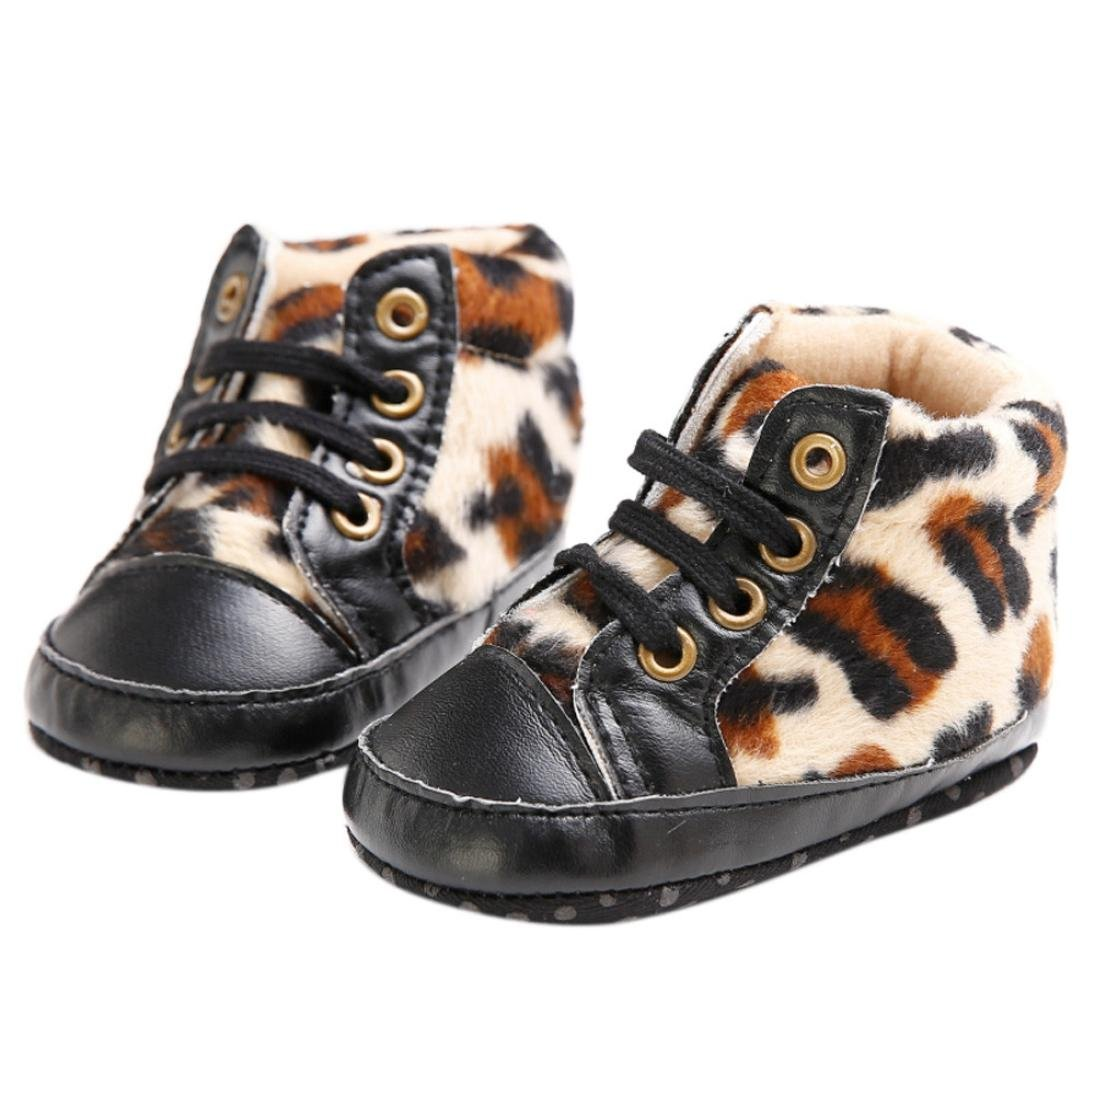 Amiley Baby Toddler Infant Snow Boots Shoes High Top Sole Prewalker Sneaker